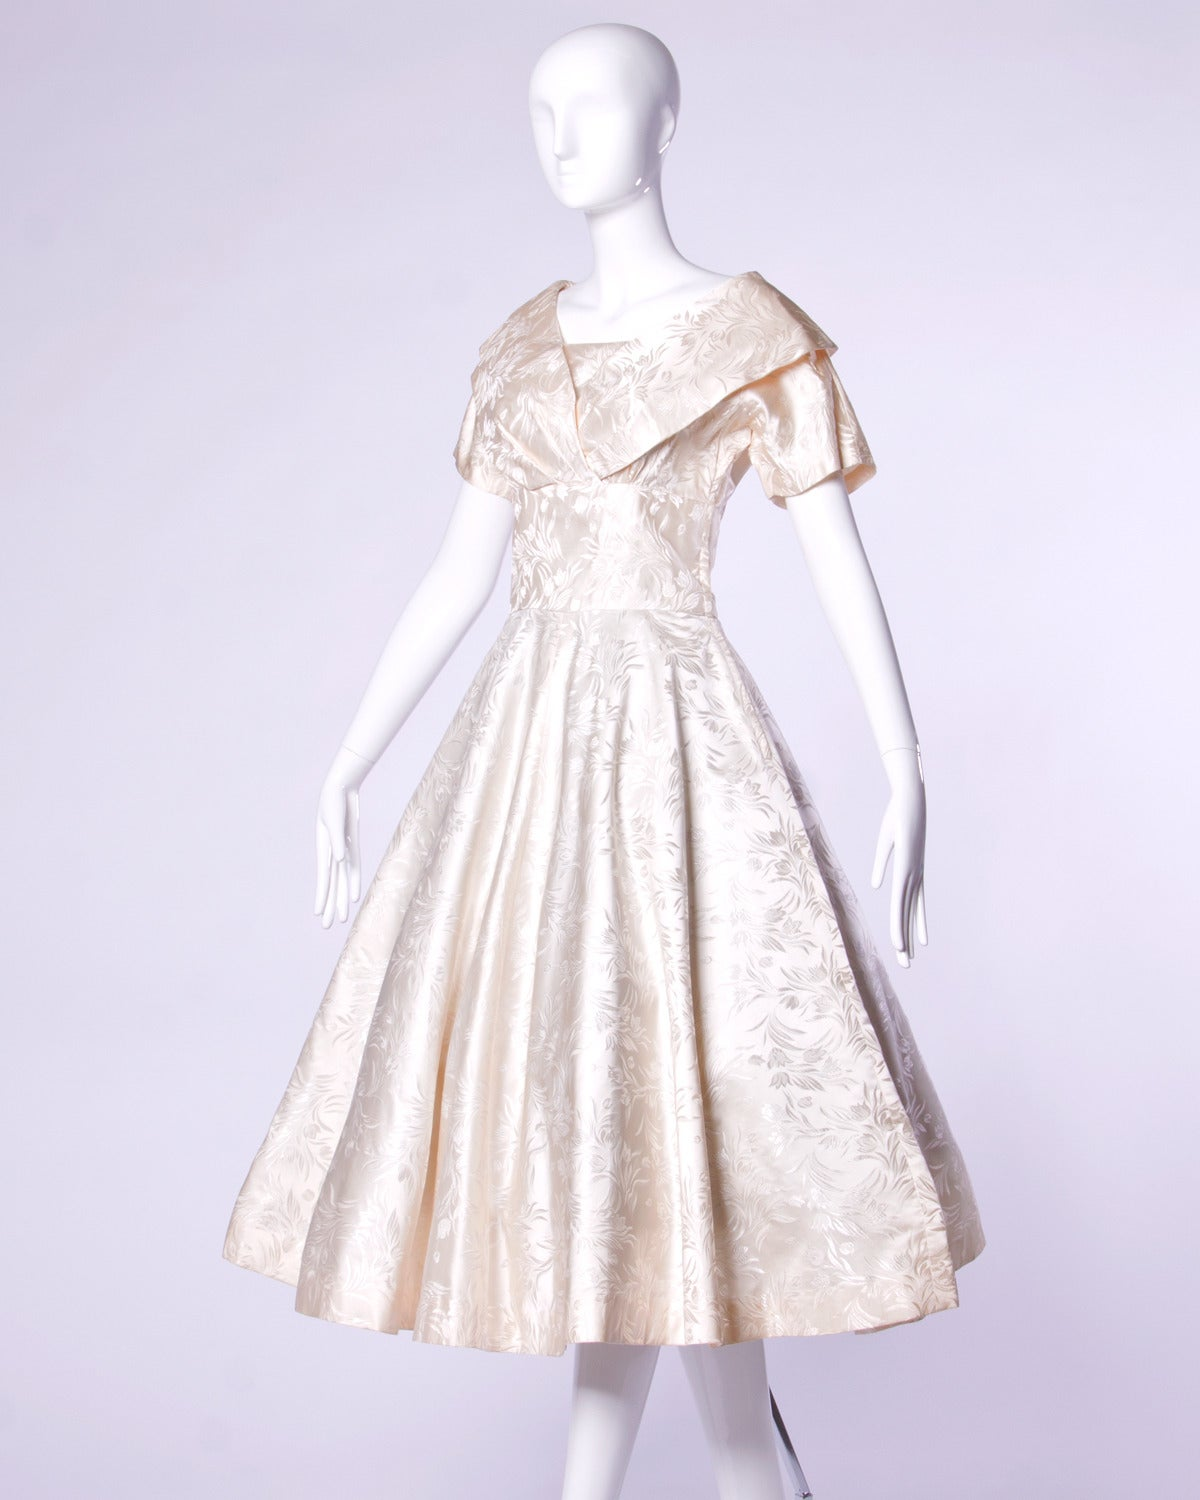 Beautiful and elegant 1950s heavy silk satin formal dress that would make the perfect vintage wedding dress! Embossed floral print and full sweep. 